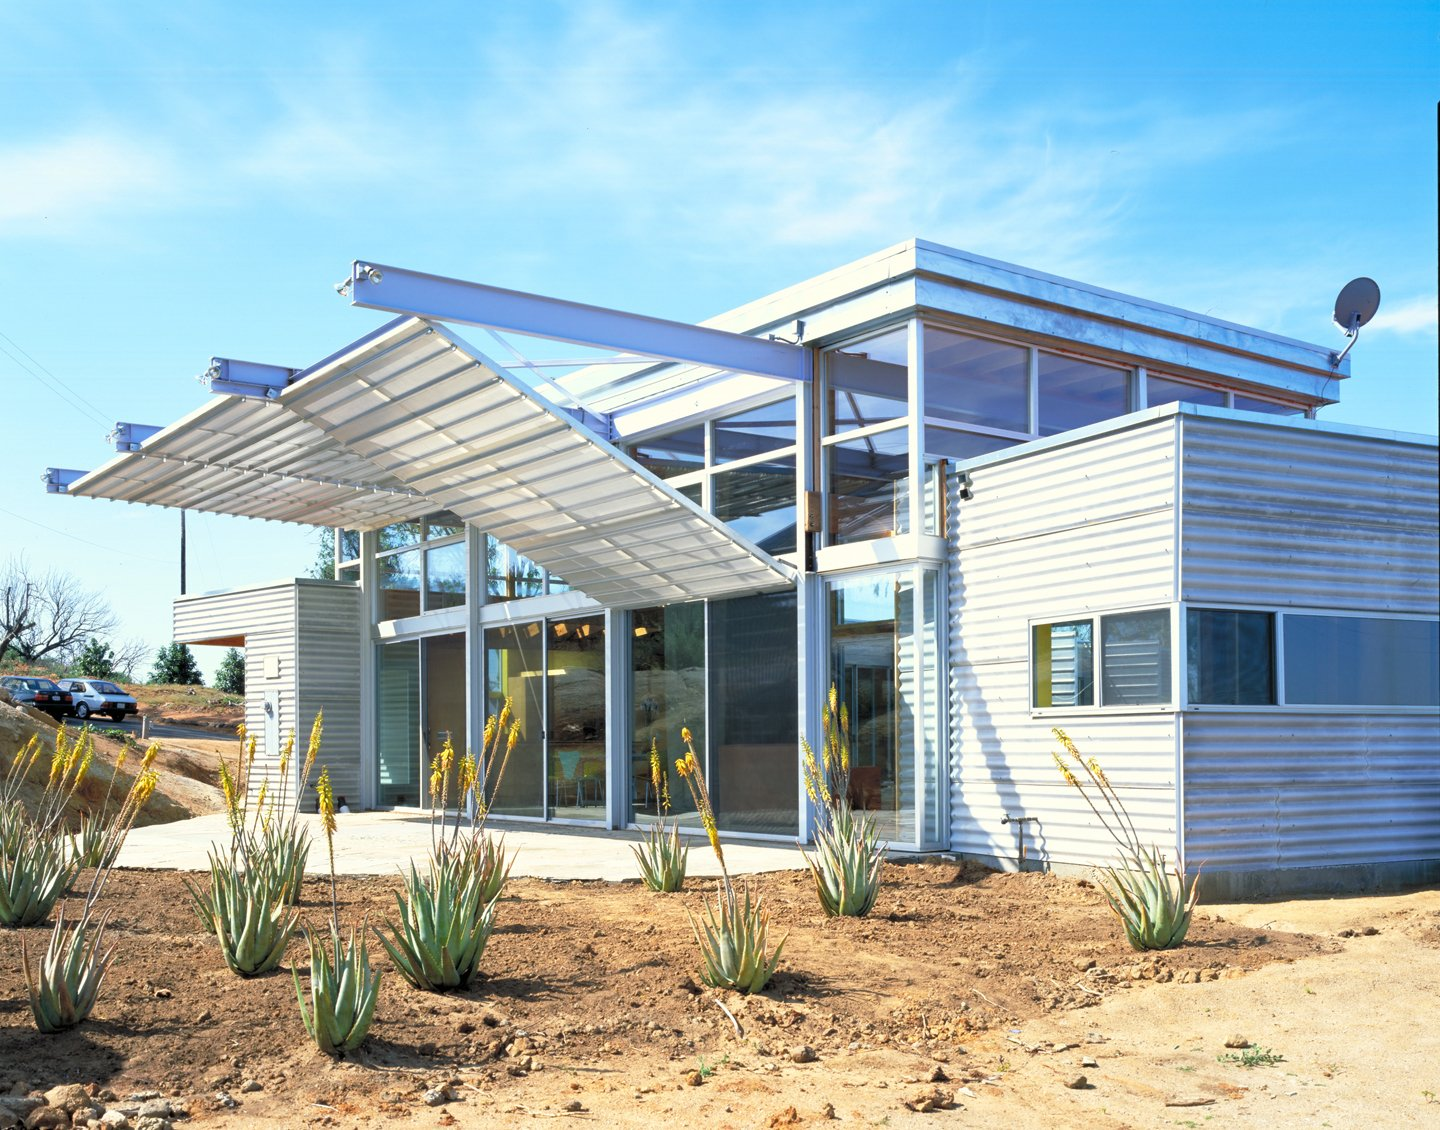 #outside #exterior #outdoor #landscape #desert #succulent #eco #green #sustainable #ValleyCenter #California #KevinDalyArchitects  Valley Center House